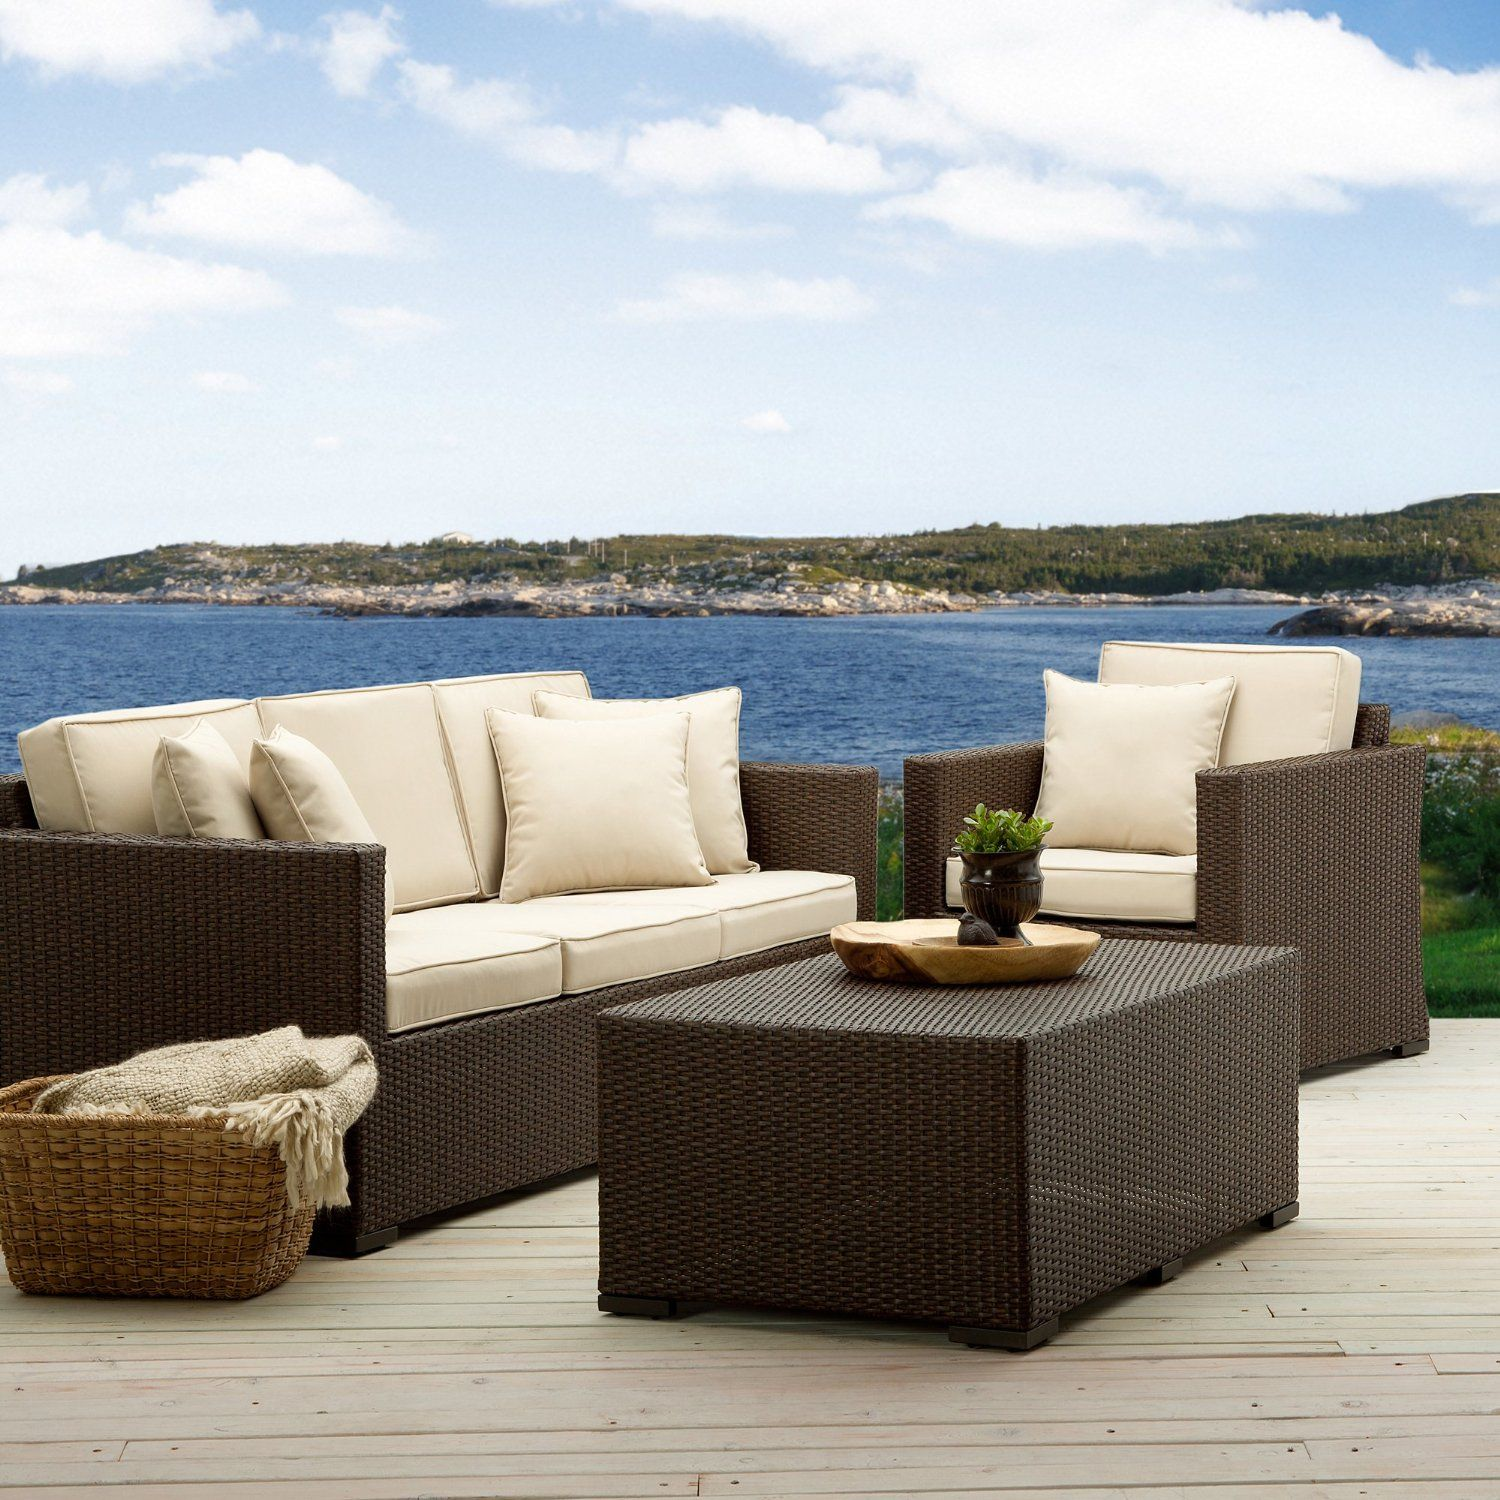 looking for patio furniture check out this set from strathwood